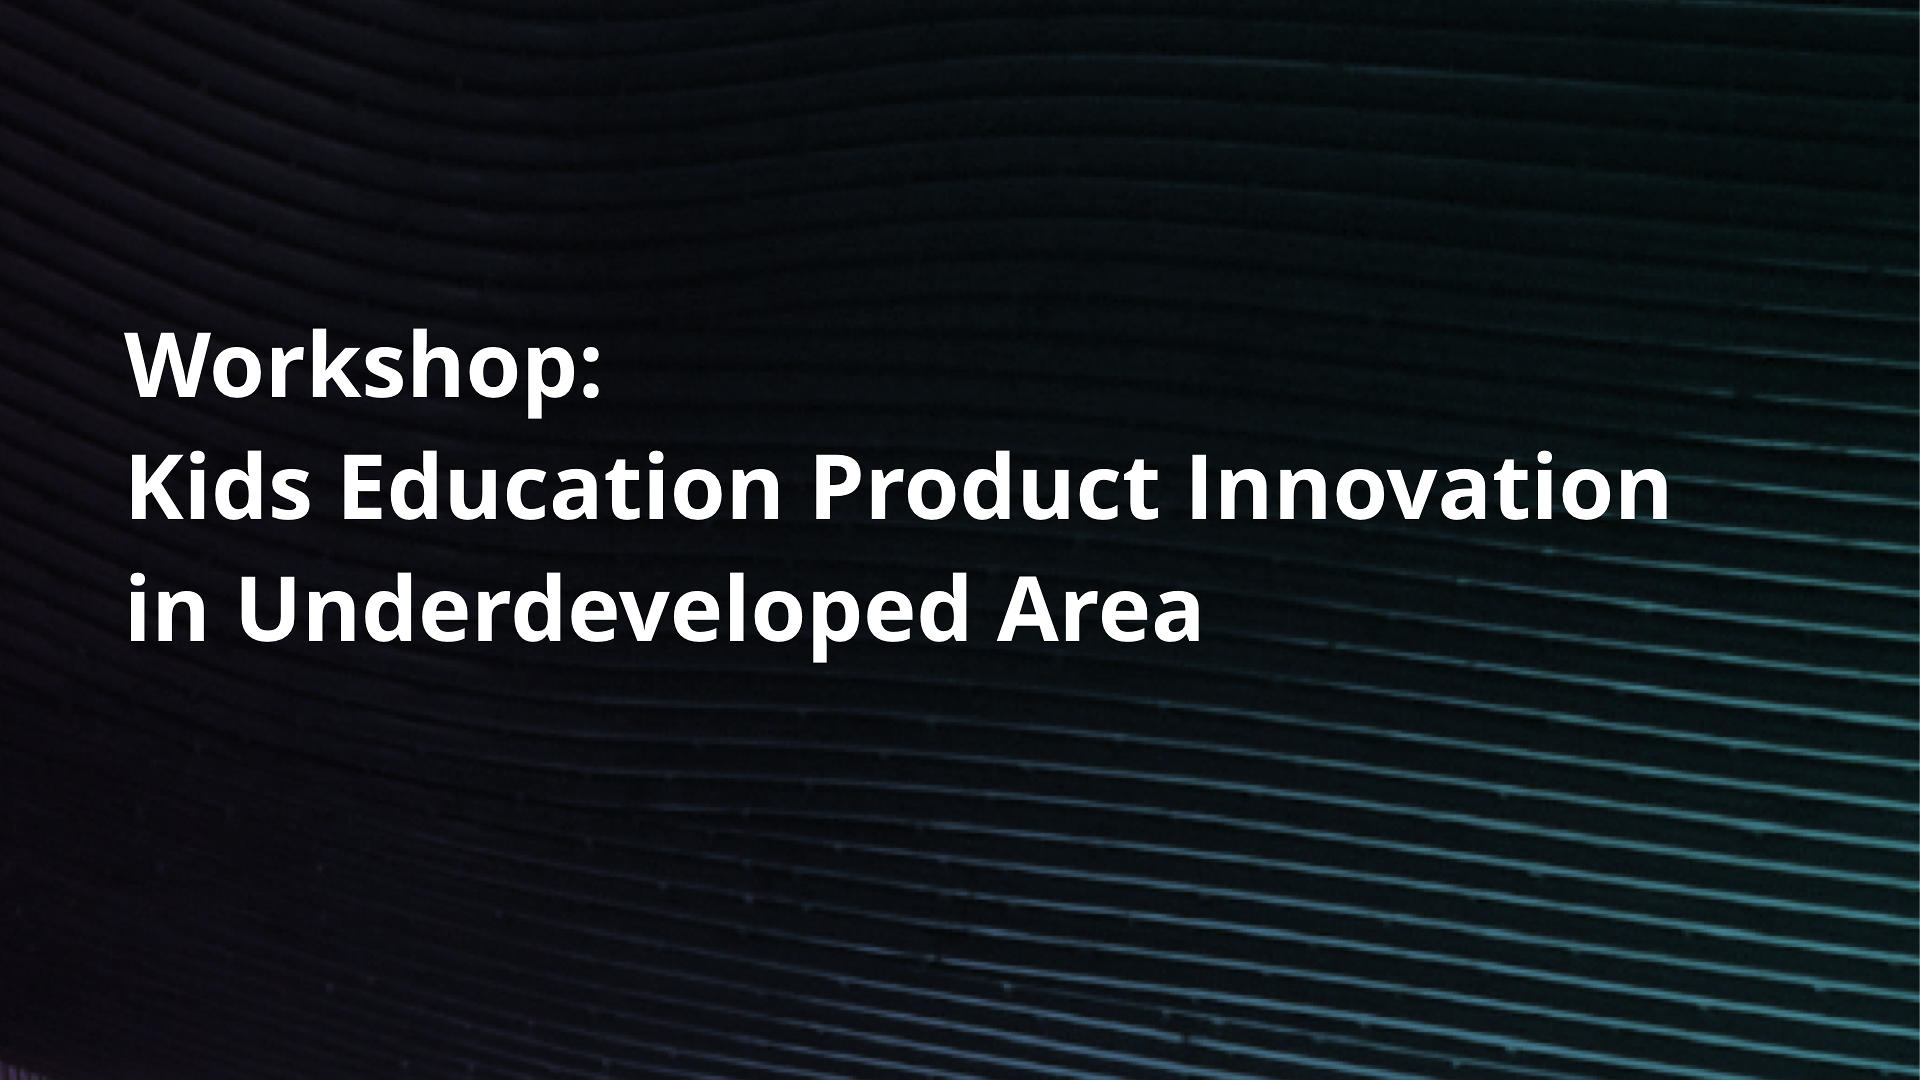 Social Innovation Workshop: Kids Education Product Innovation in Underdeveloped Area